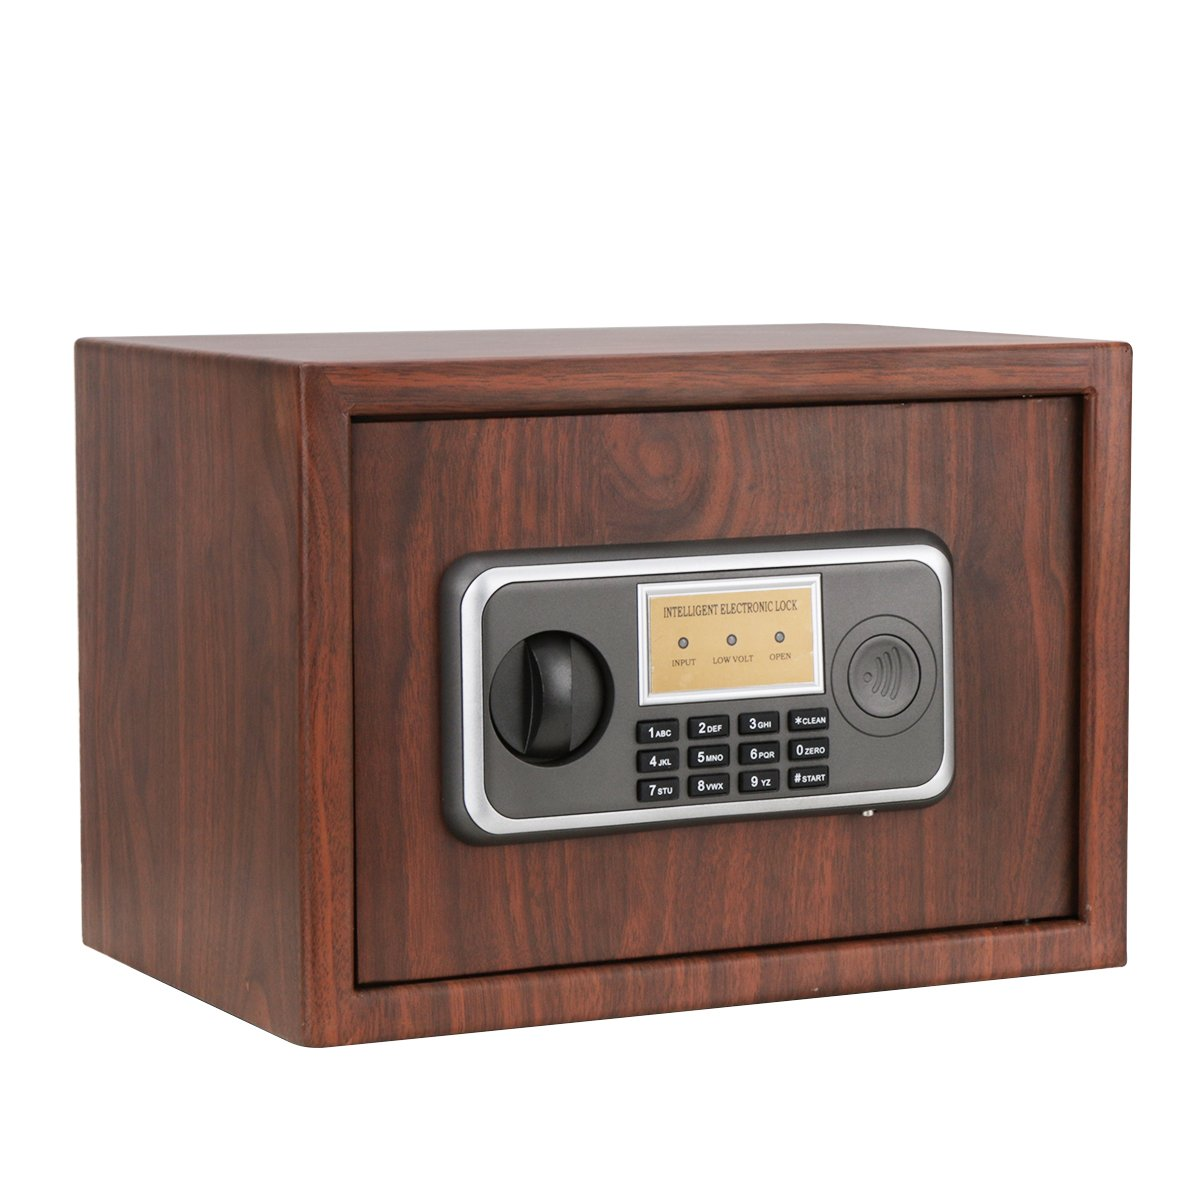 0.5 CF Digital Security Safe Box - Jssmst Lock Safe Box Wall Anchoring Design Wood Color, 0.5 Cubic Feet, WSB001